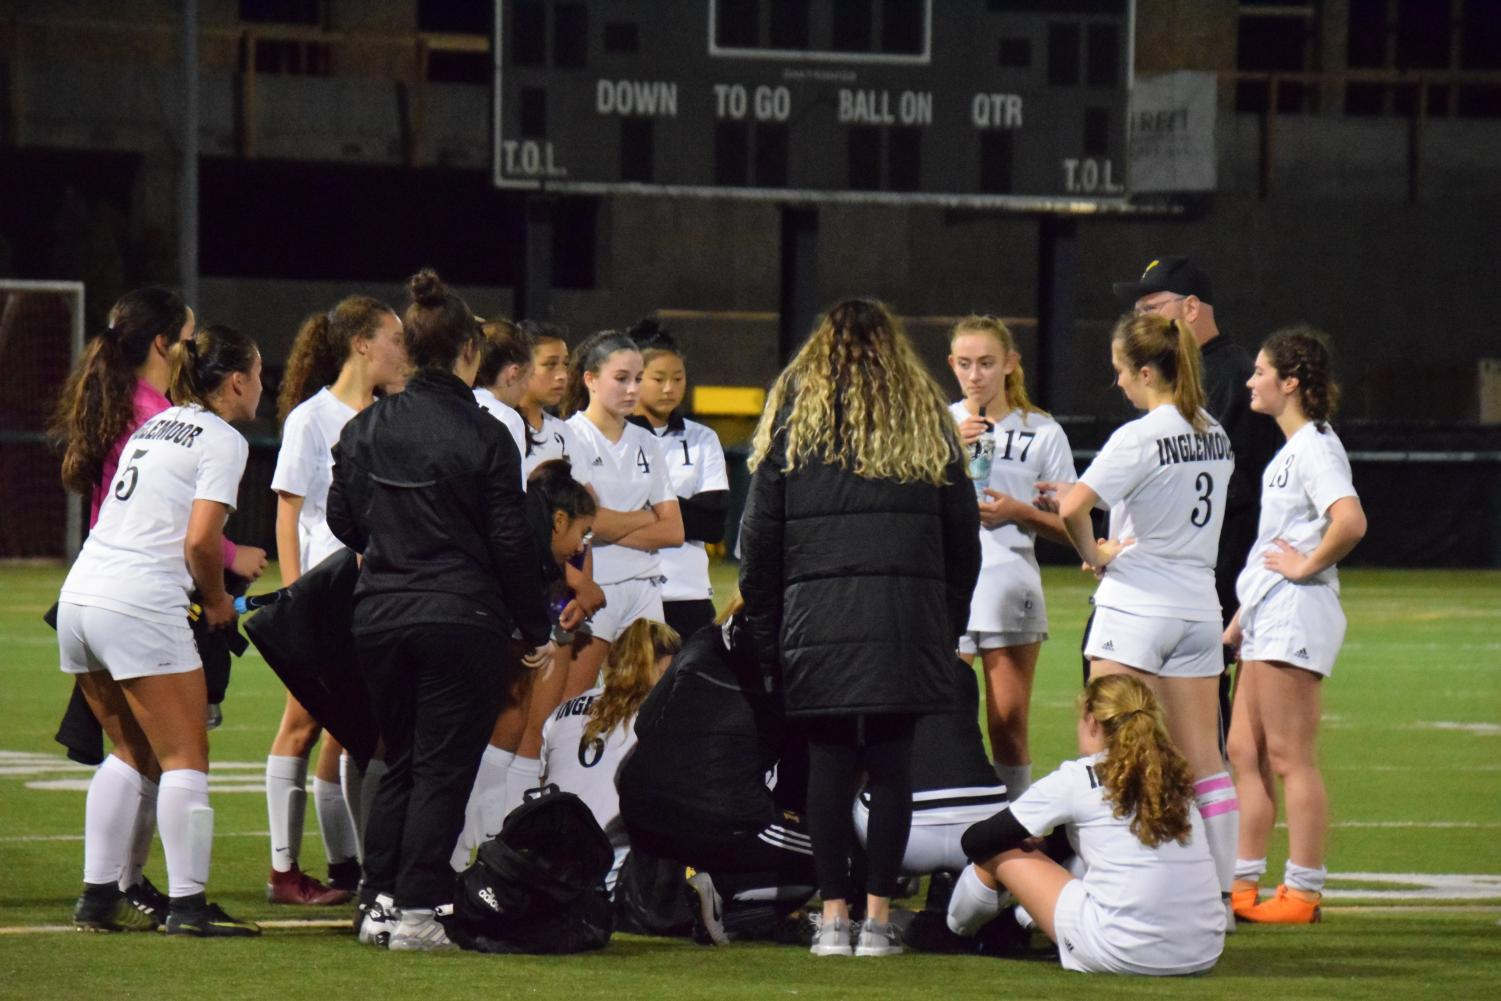 Inglemoor players form a huddle after their draw with Woodinville on Oct. 24.